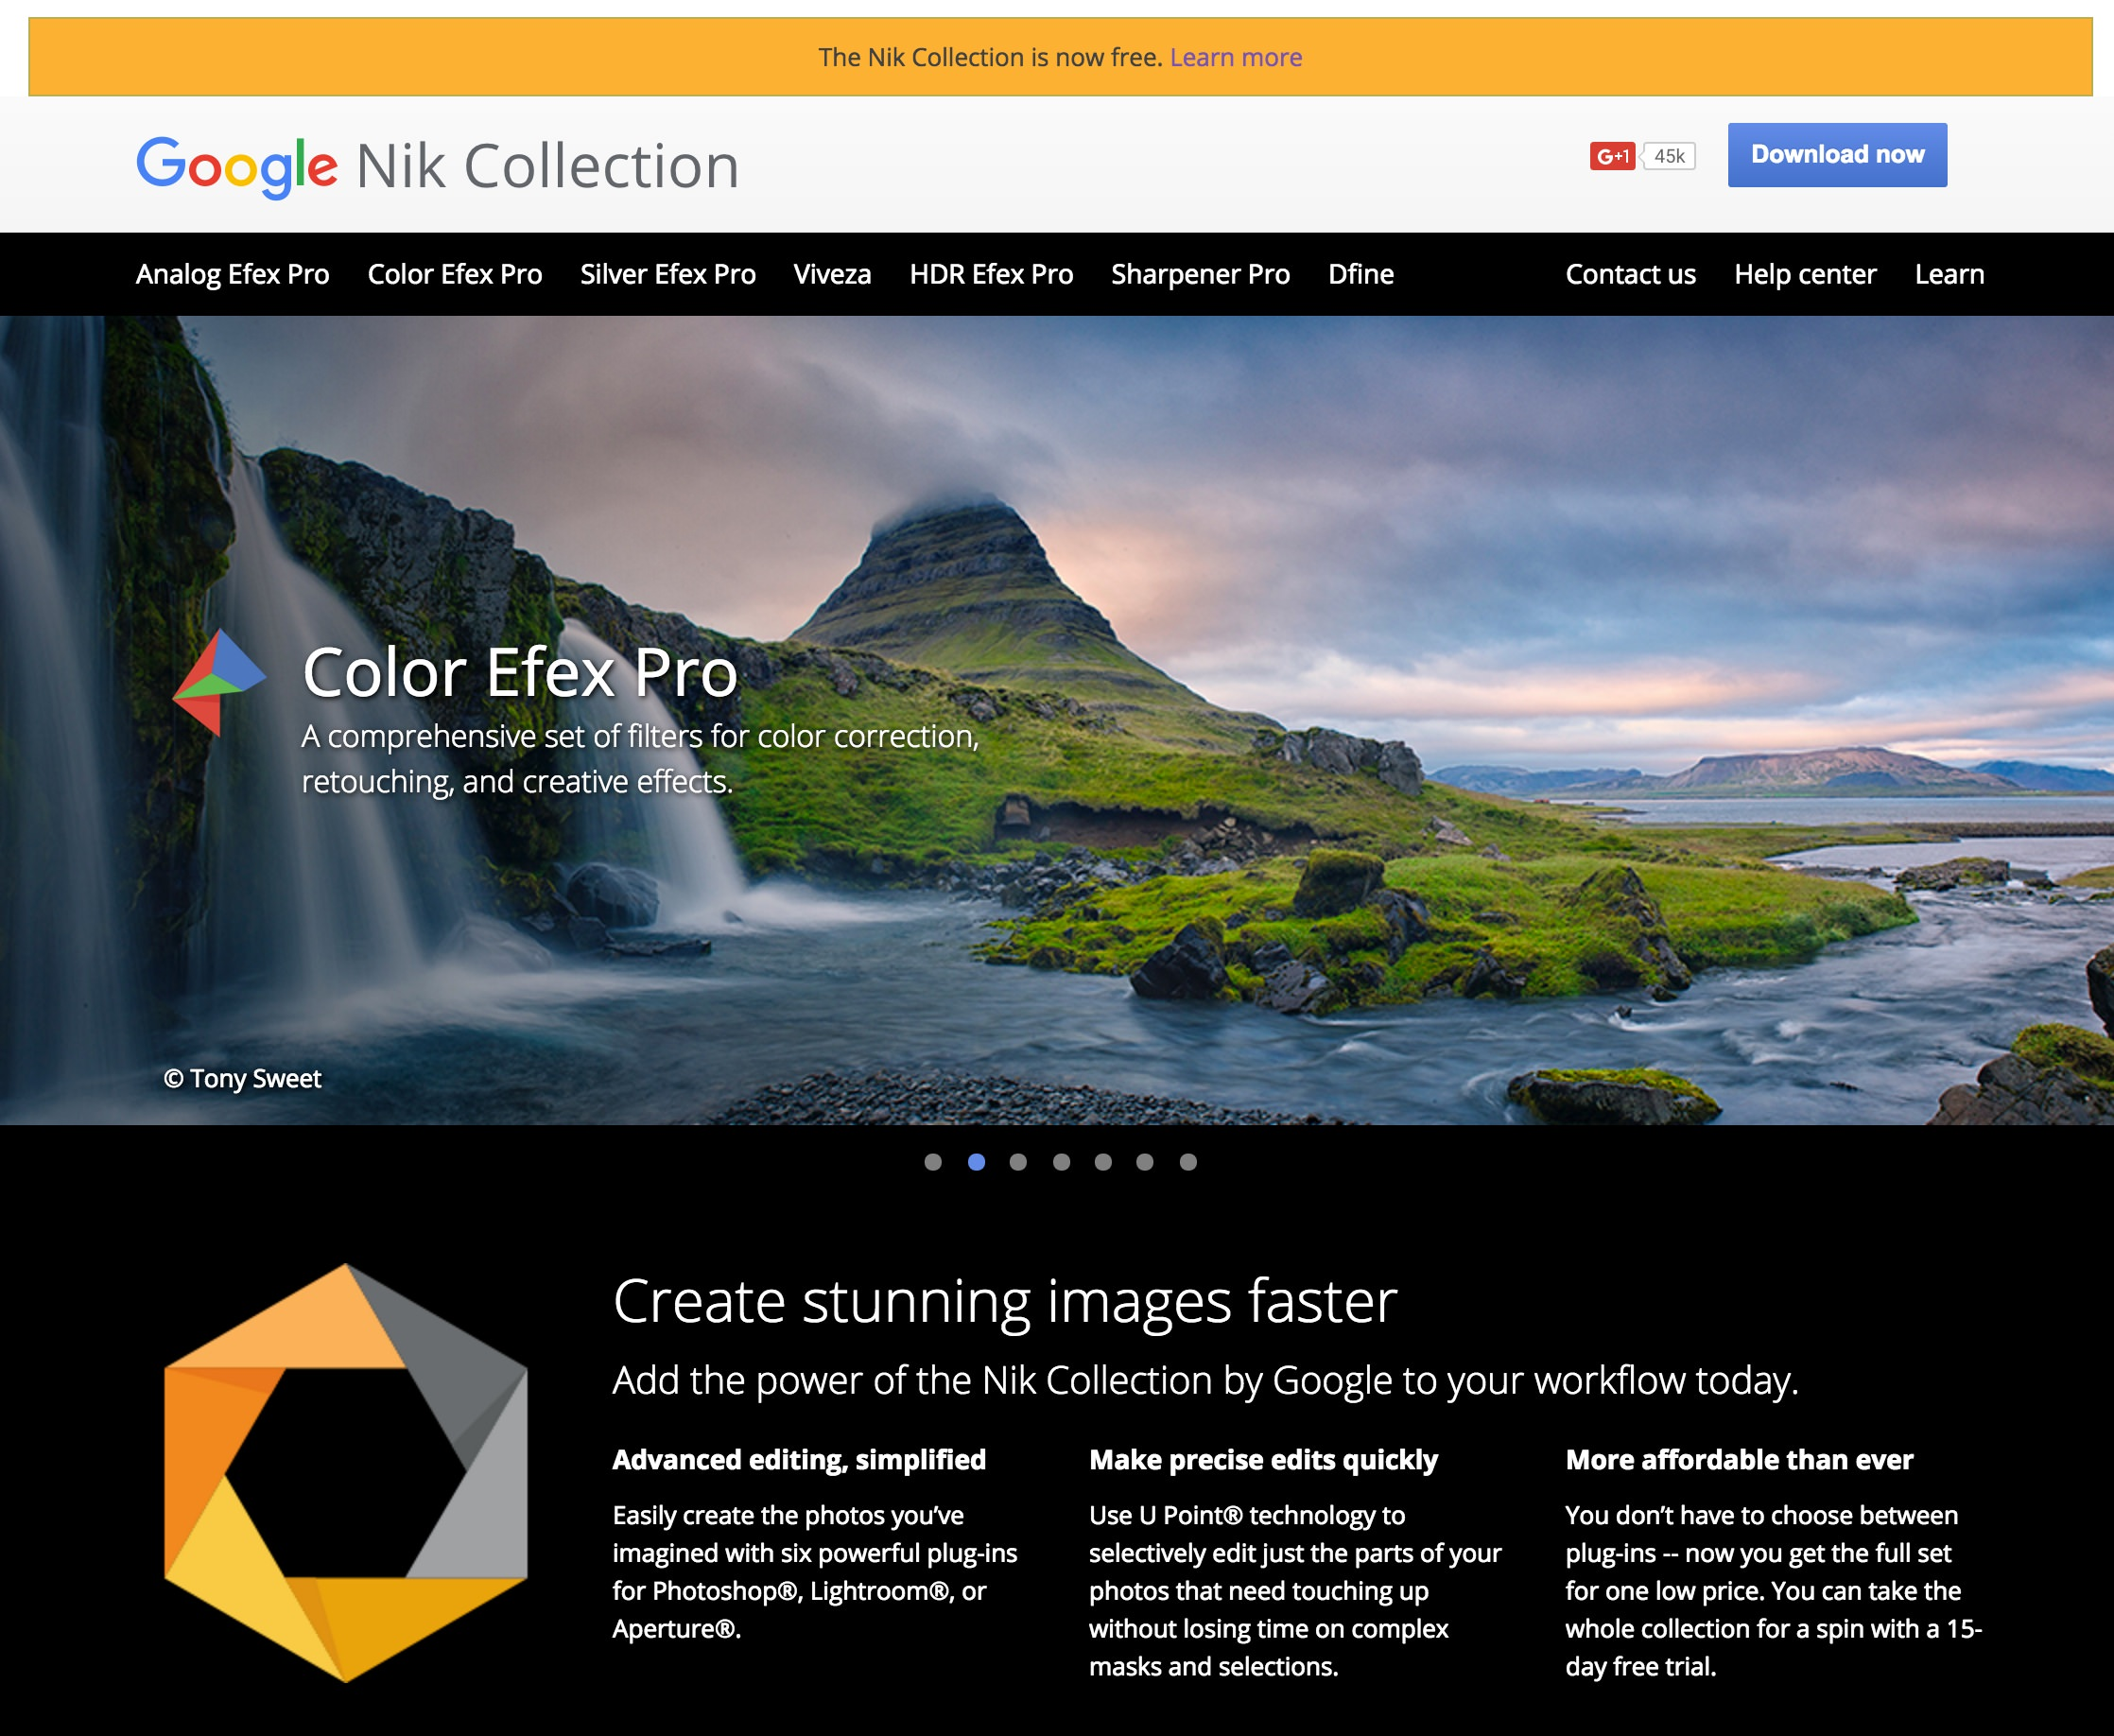 Google Nik Collection now Free (save $150)